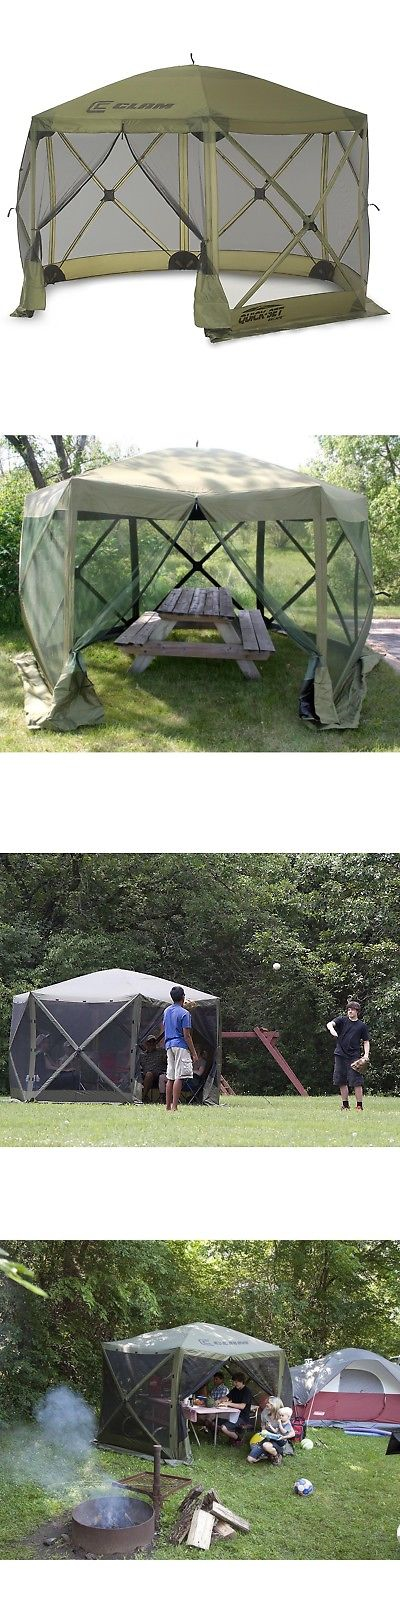 Canopies and Shelters 179011 Clam Quick Set Escape Portable C&ing Outdoor Gazebo Canopy Shelter Screen & Canopies and Shelters 179011: Clam Quick Set Escape Portable ...